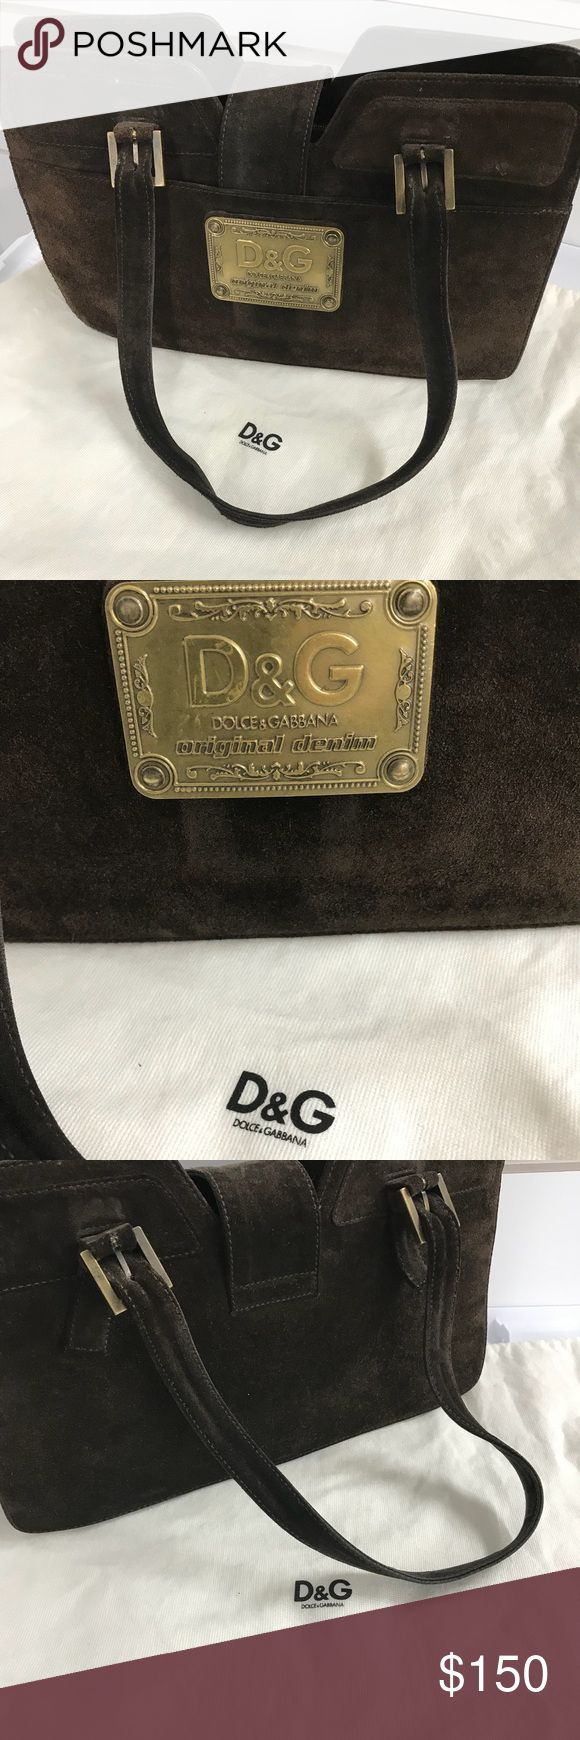 Dolce&Gabana brown suede satchel Good condition Dolce & Gabbana Bags Satchels